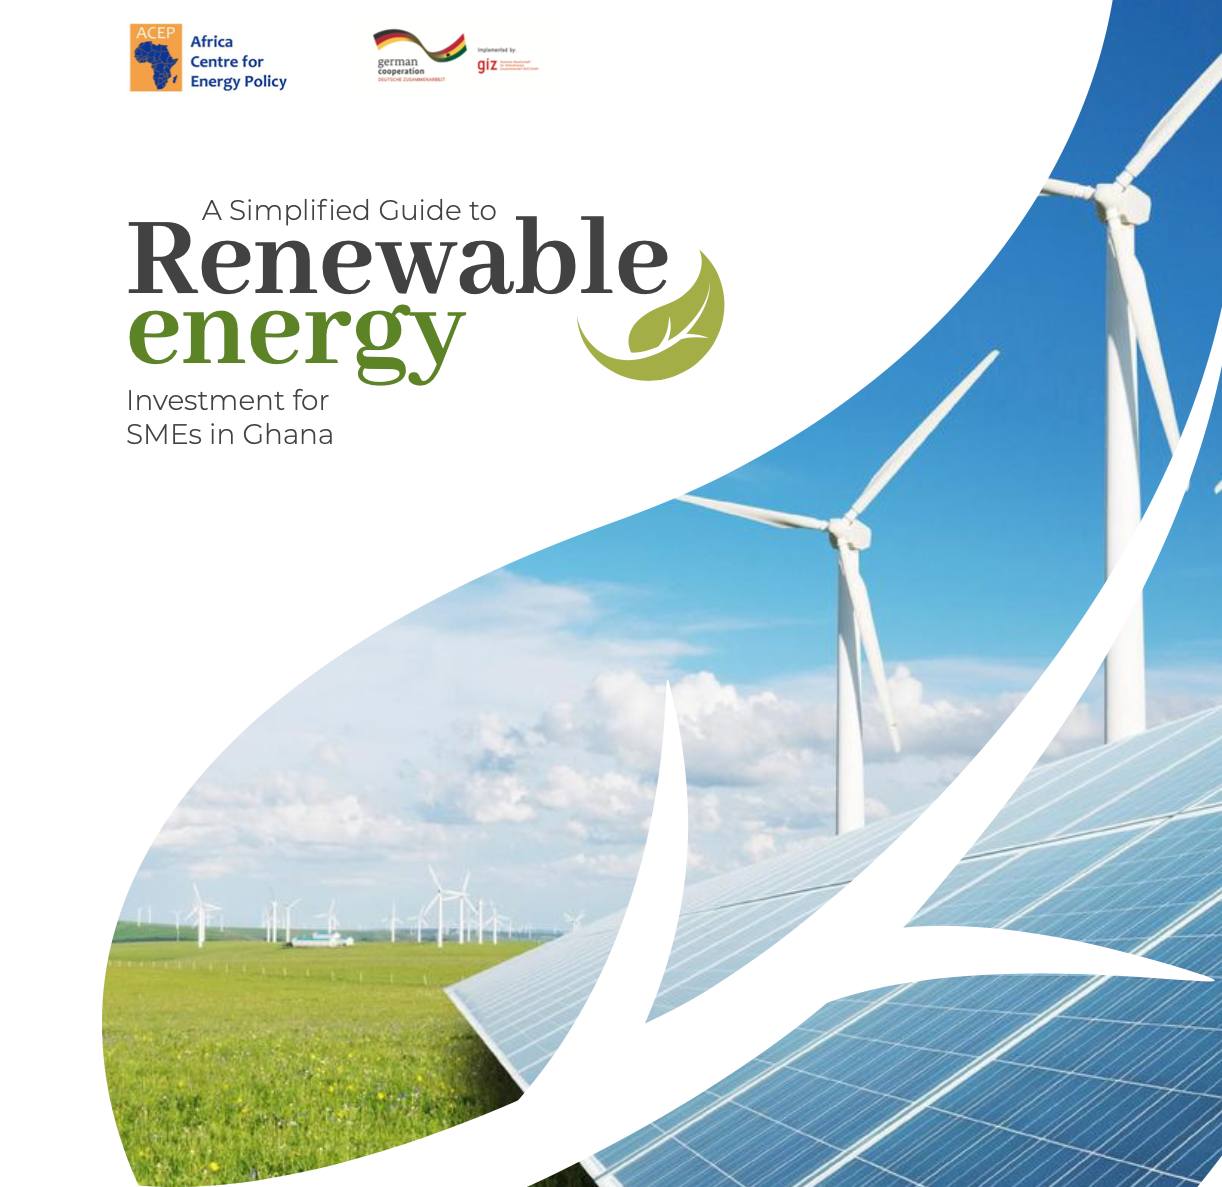 ACEP_newsletter_Renewable energy Investment for SMEs in Ghana copy